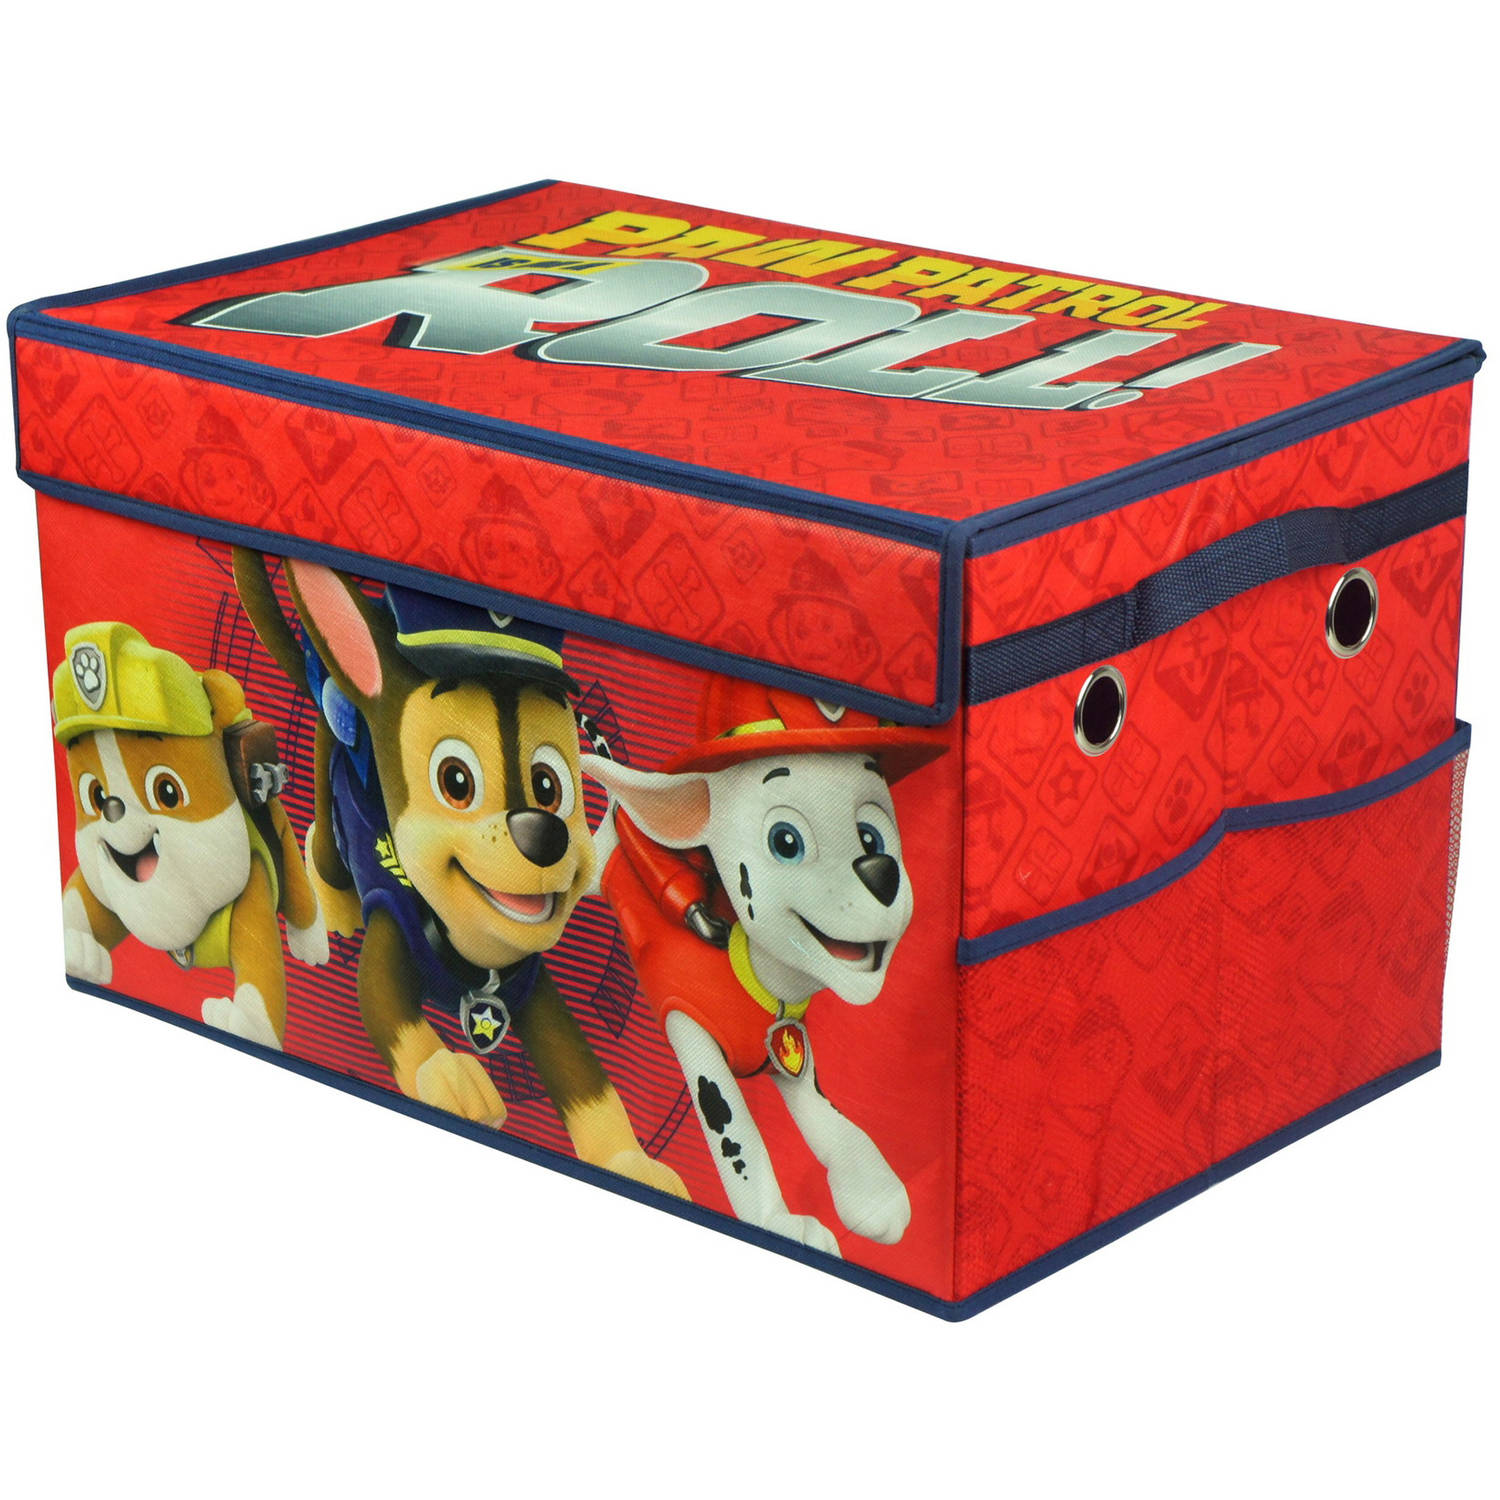 Paw Patrol Boy Collapsible Toy Storage Trunk